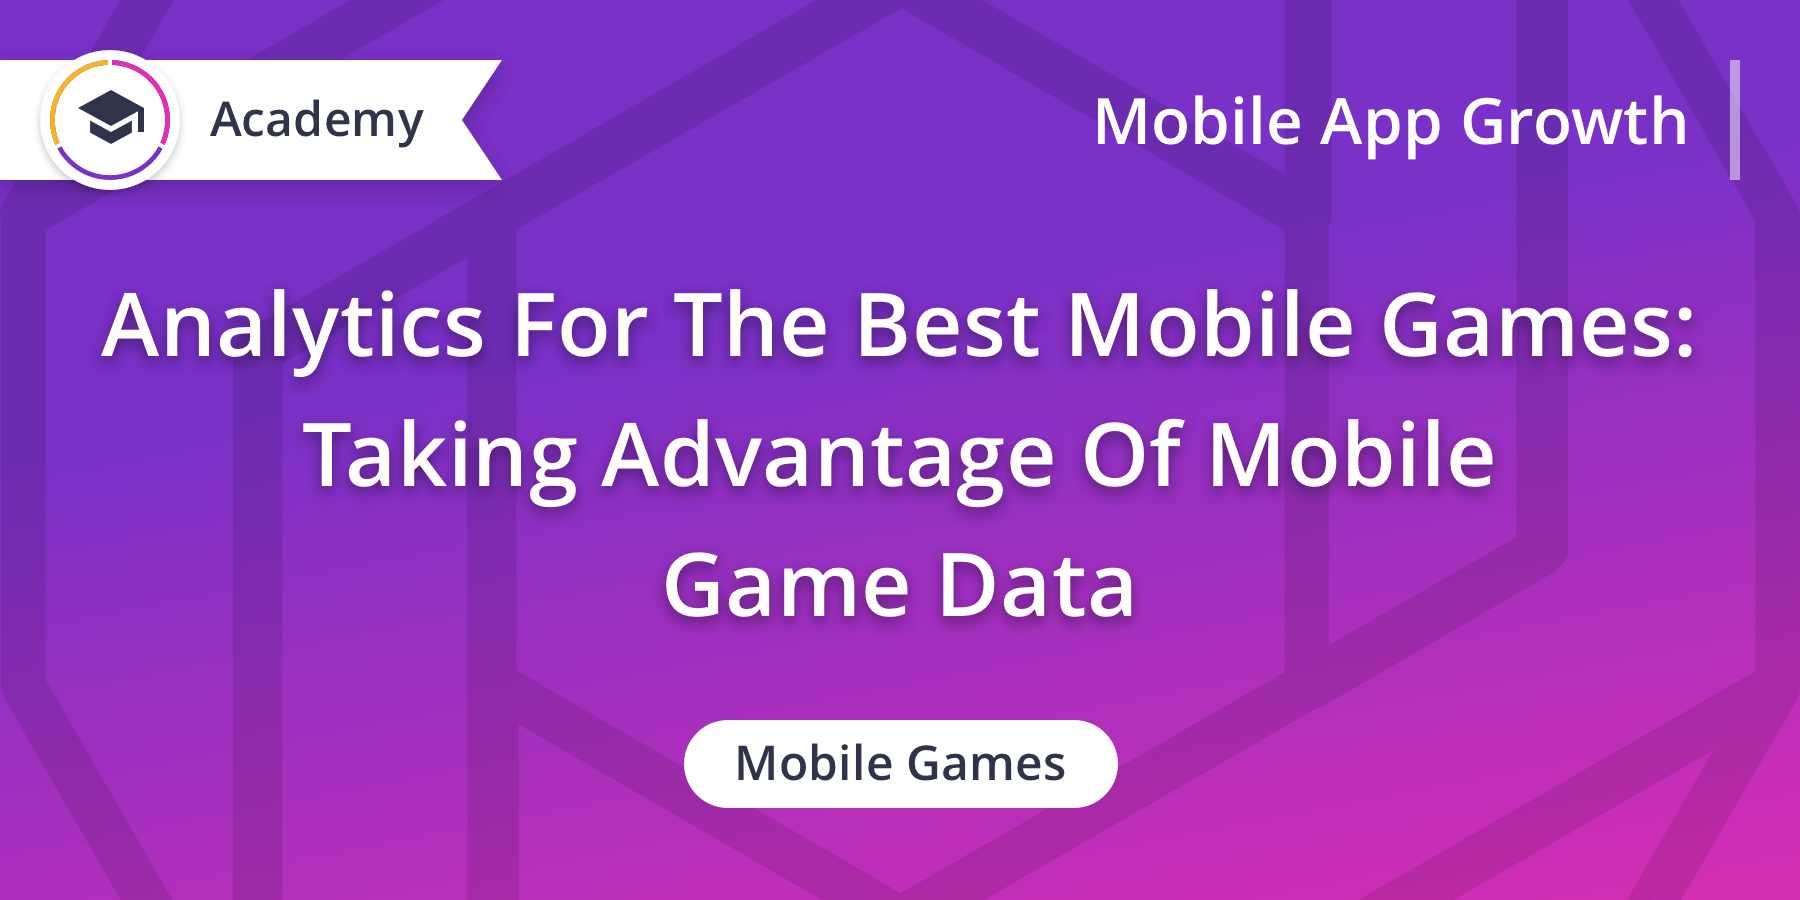 Analytics For The Best Mobile Games: Taking Advantage Of Mobile Game Data